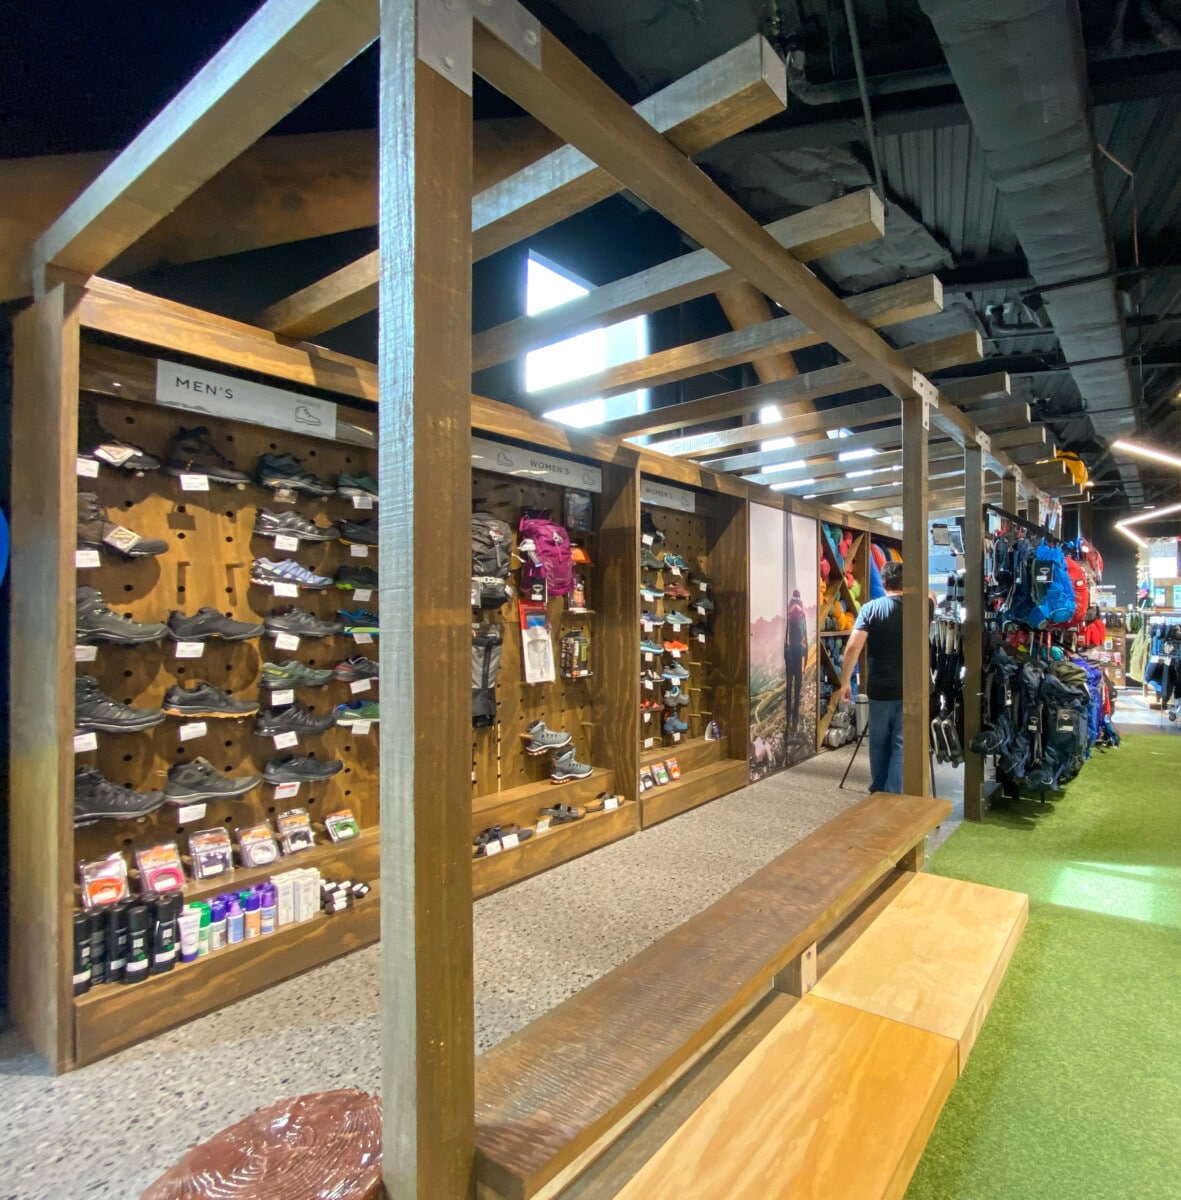 Freestanding footwear wall with puck display and seating made with natural wood and plywood